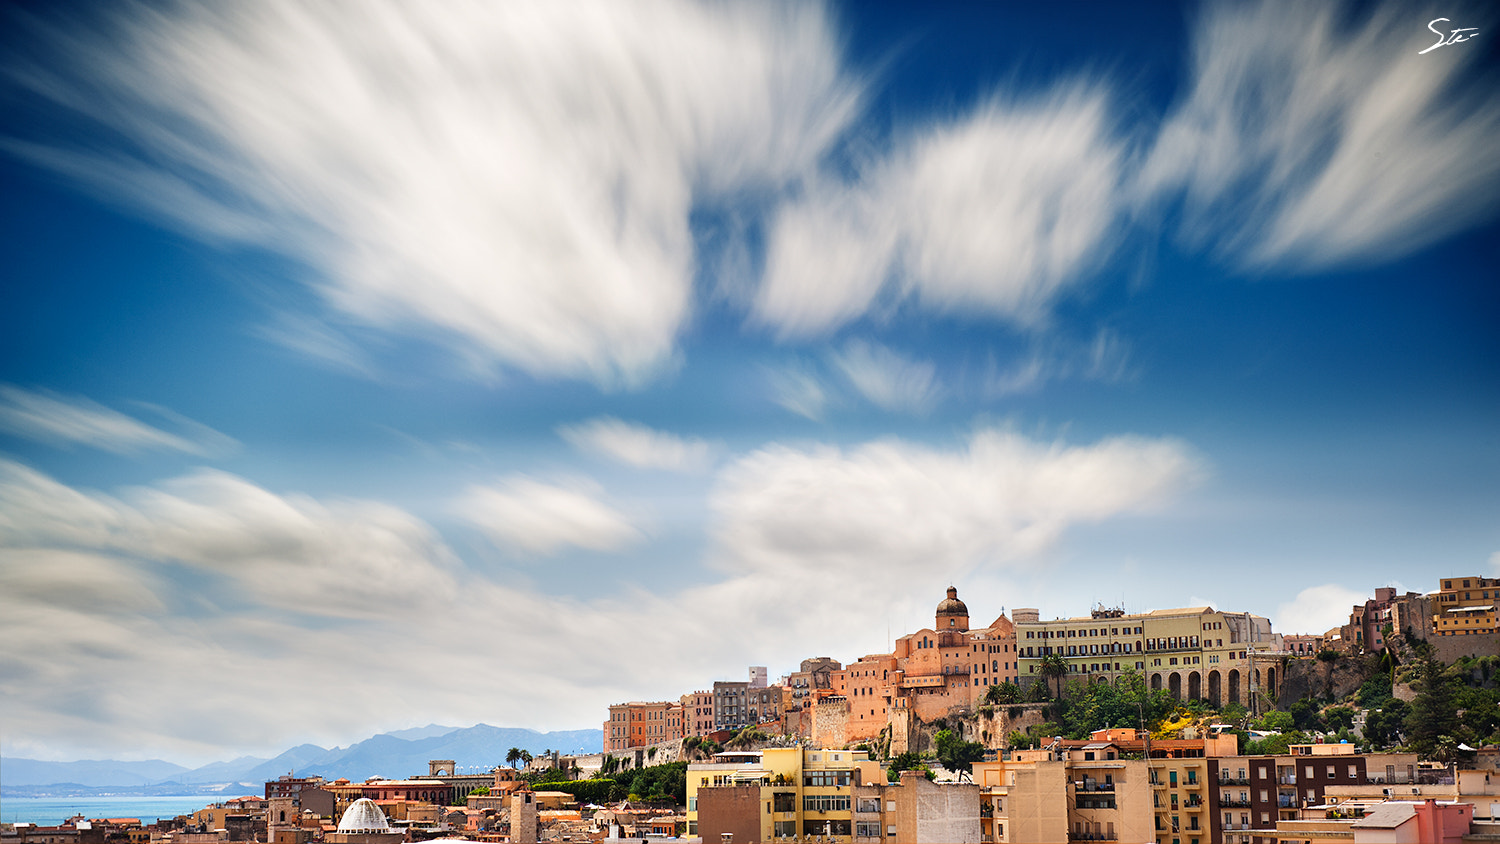 Photograph Cagliari in long exposure  by Stefano Garau on 500px